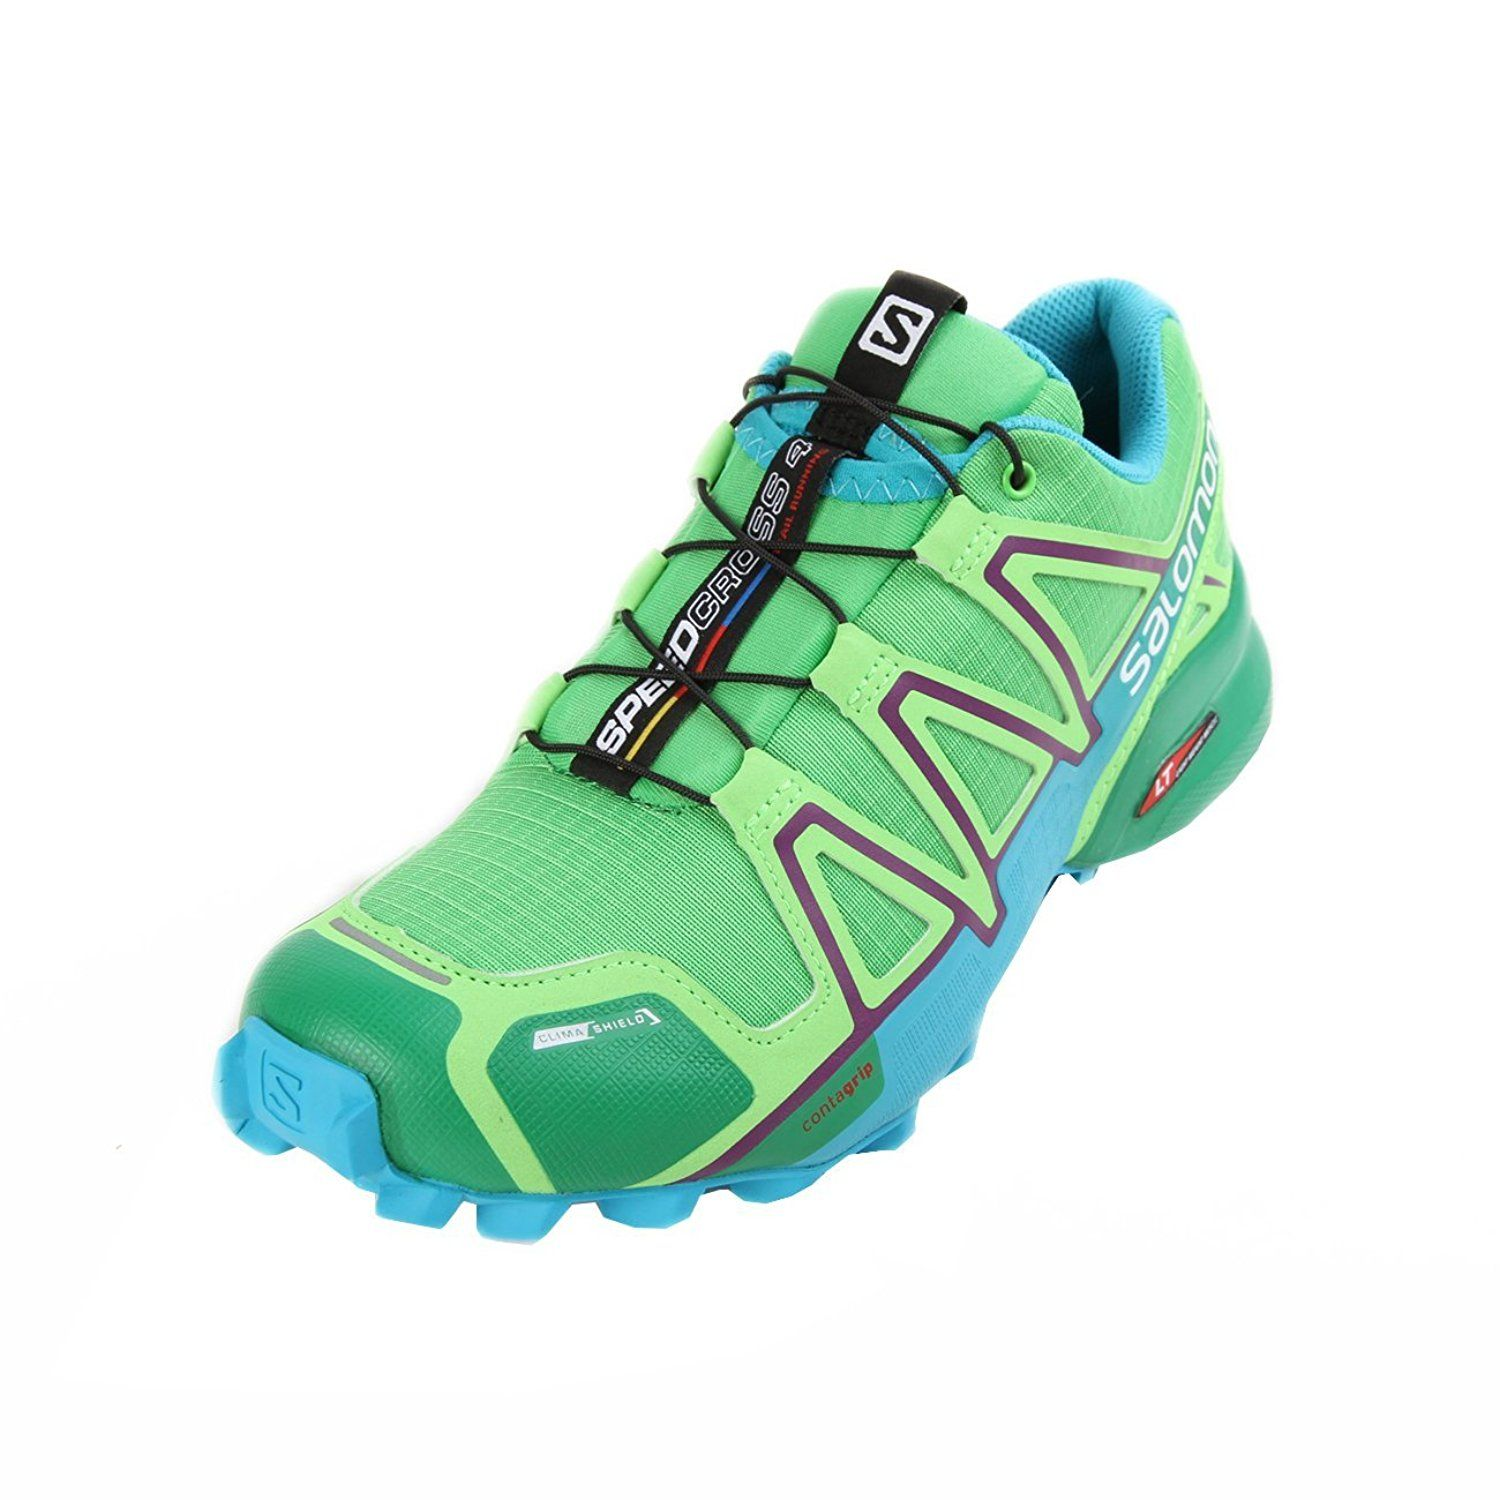 Salomon Speedcross 4 CS W Women's Trail Running Shoes